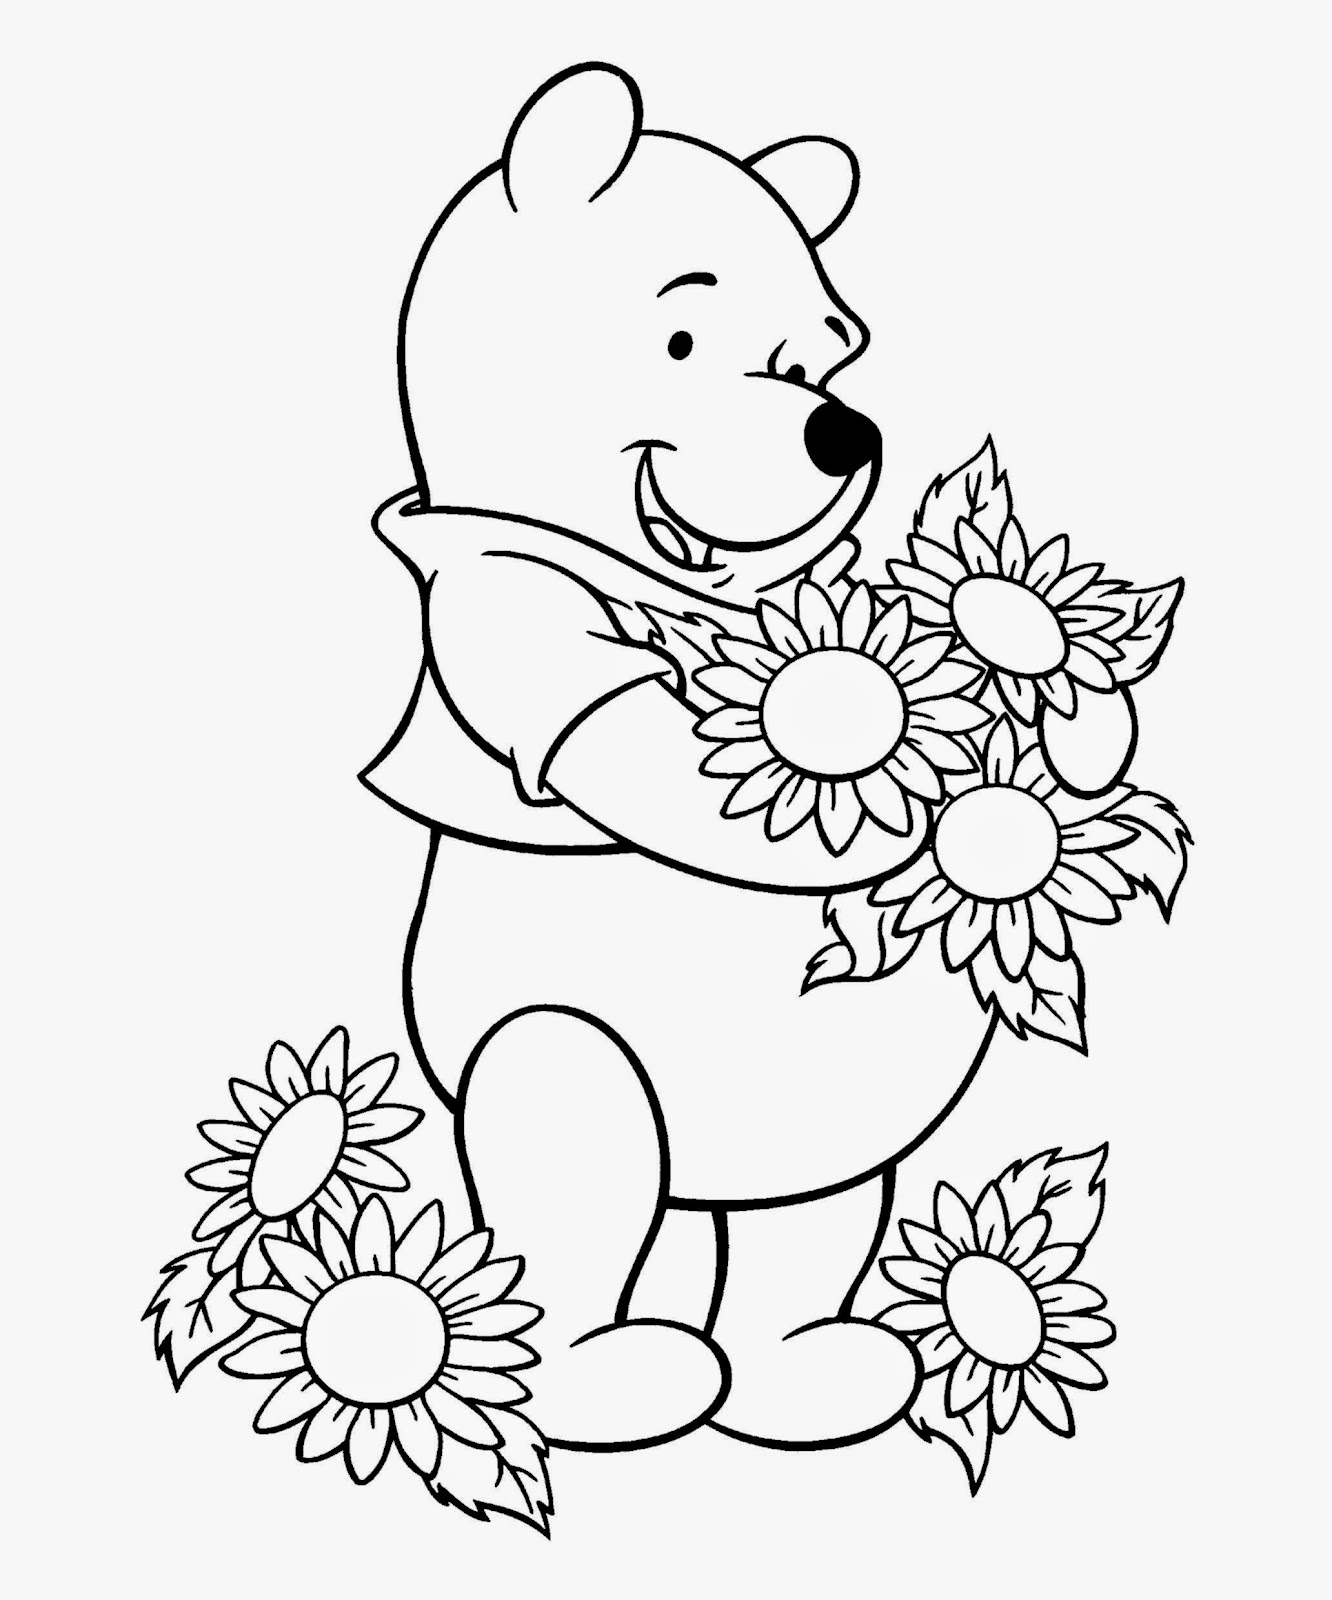 Coloring Pages Whinnie The Pooh Coloring Pages coloring pages winnie the pooh futpal com and piglet az pages